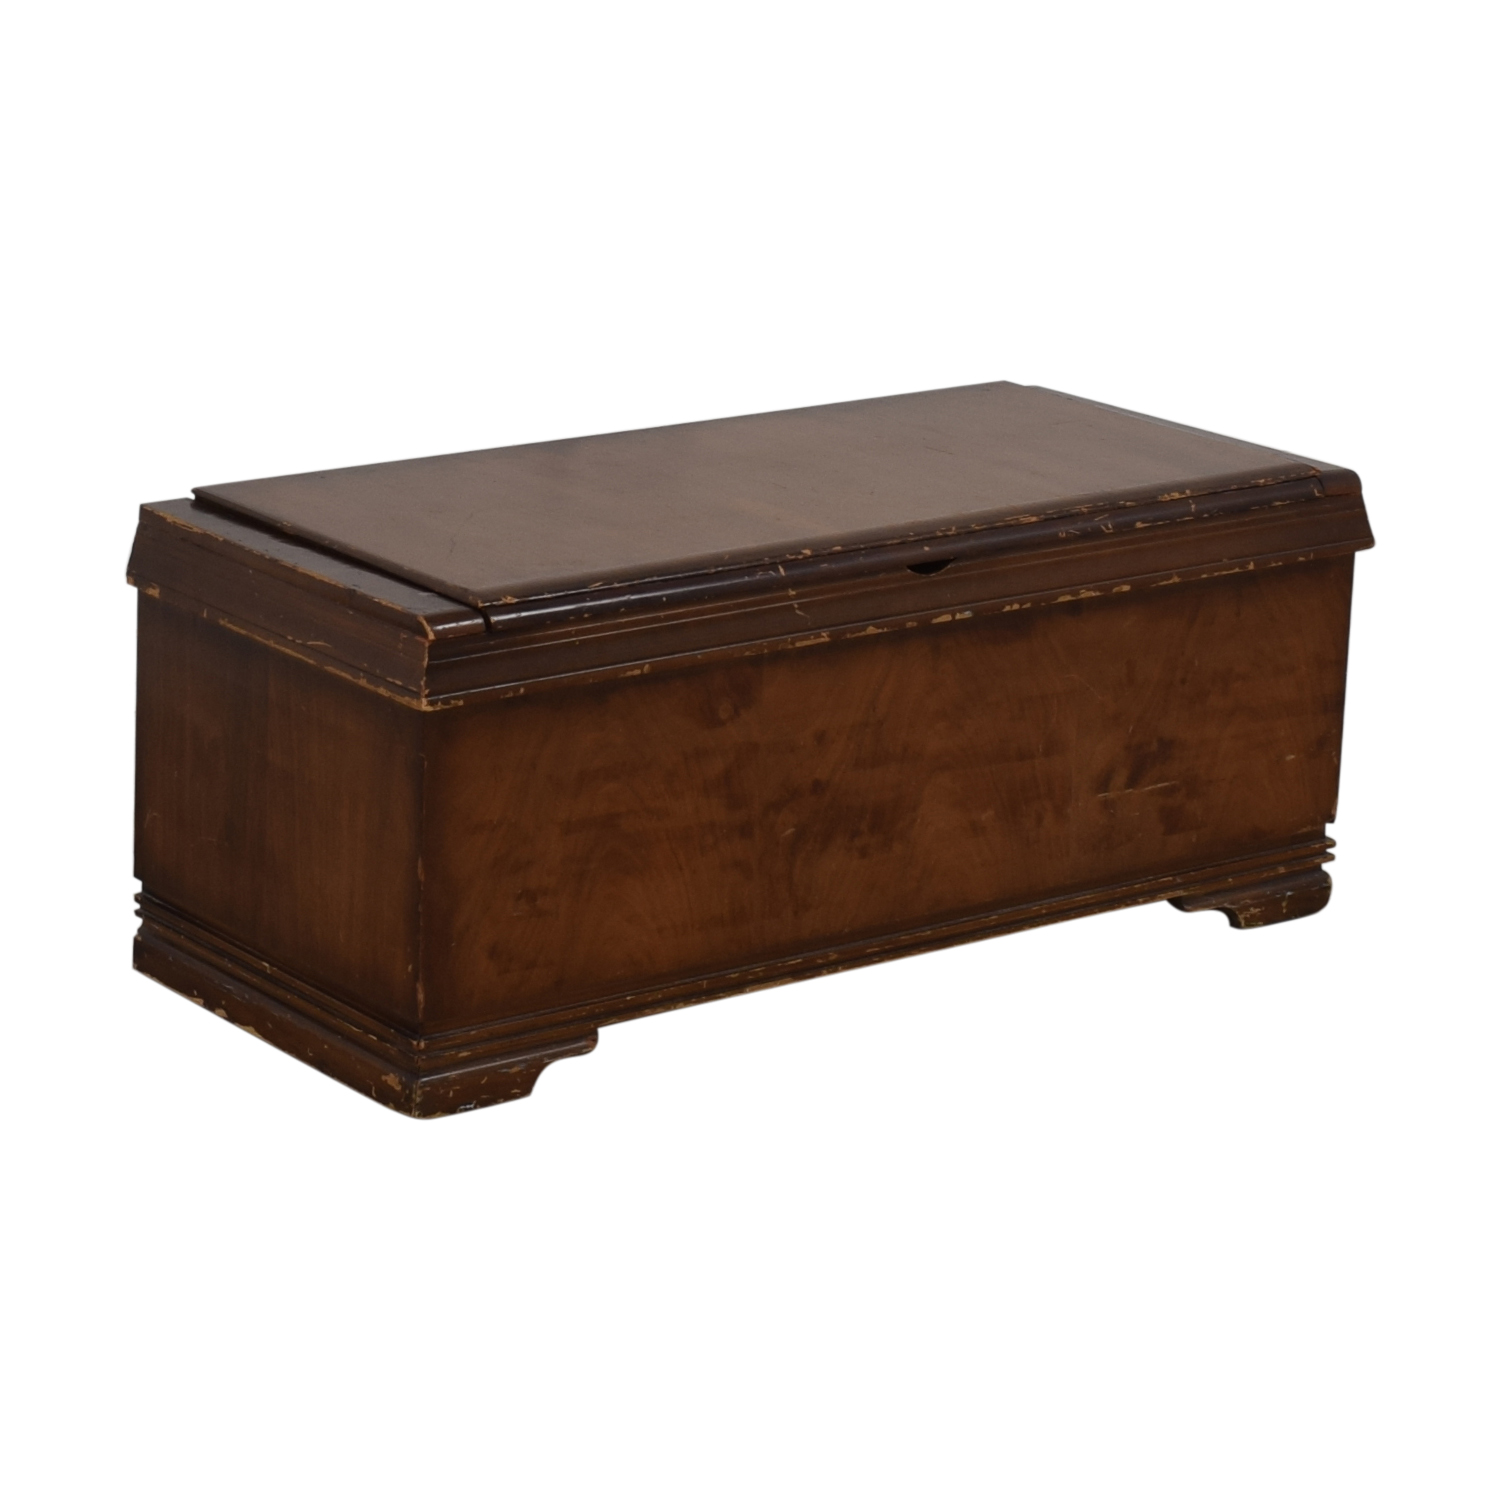 Wooden Trunk sale